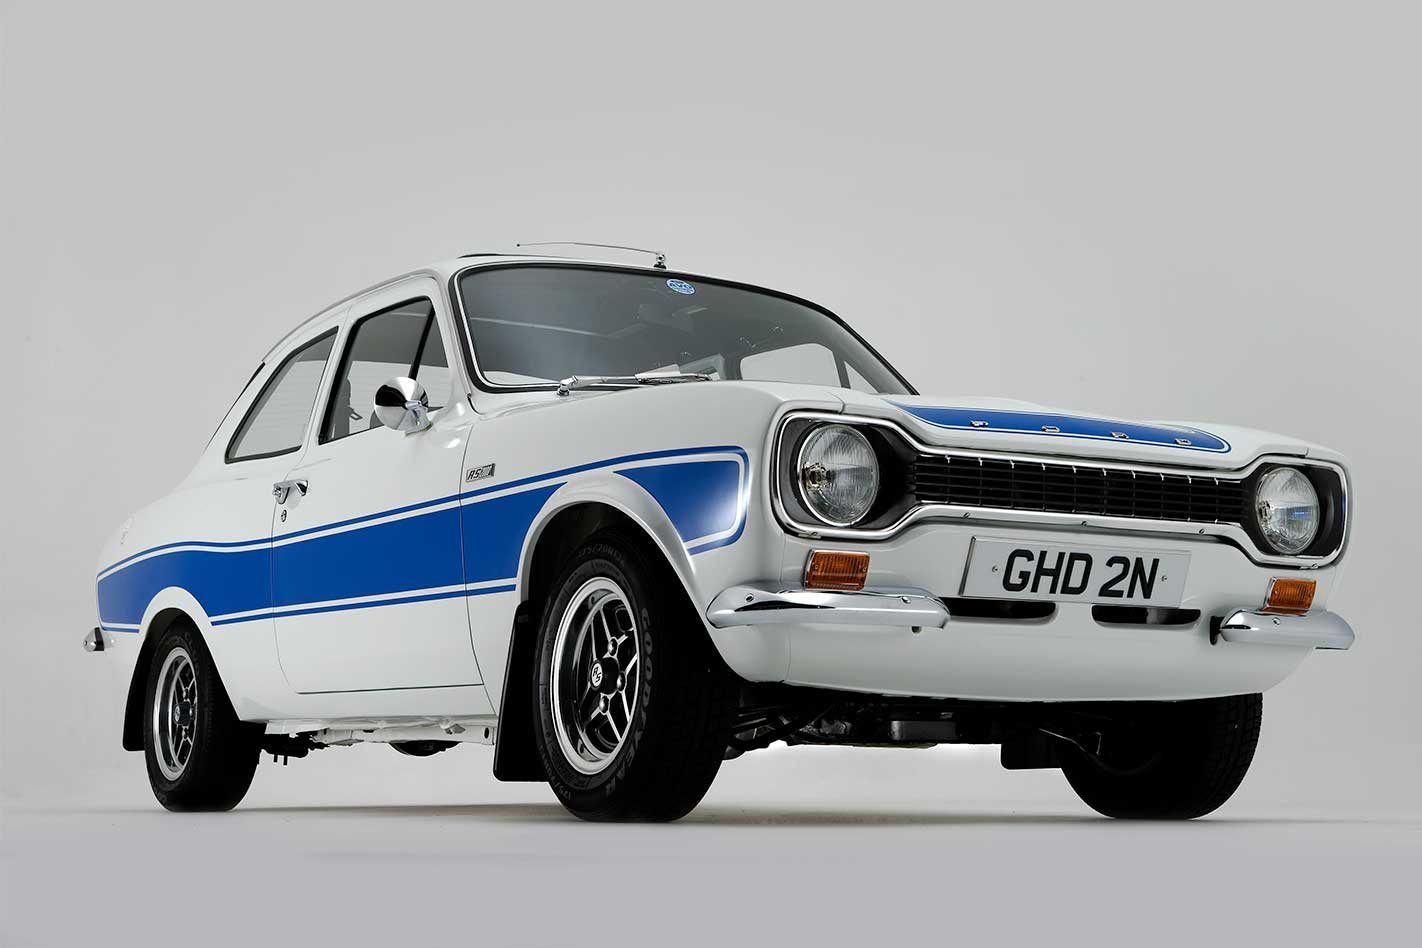 1974 ford escort mk1 rs2000 legend series